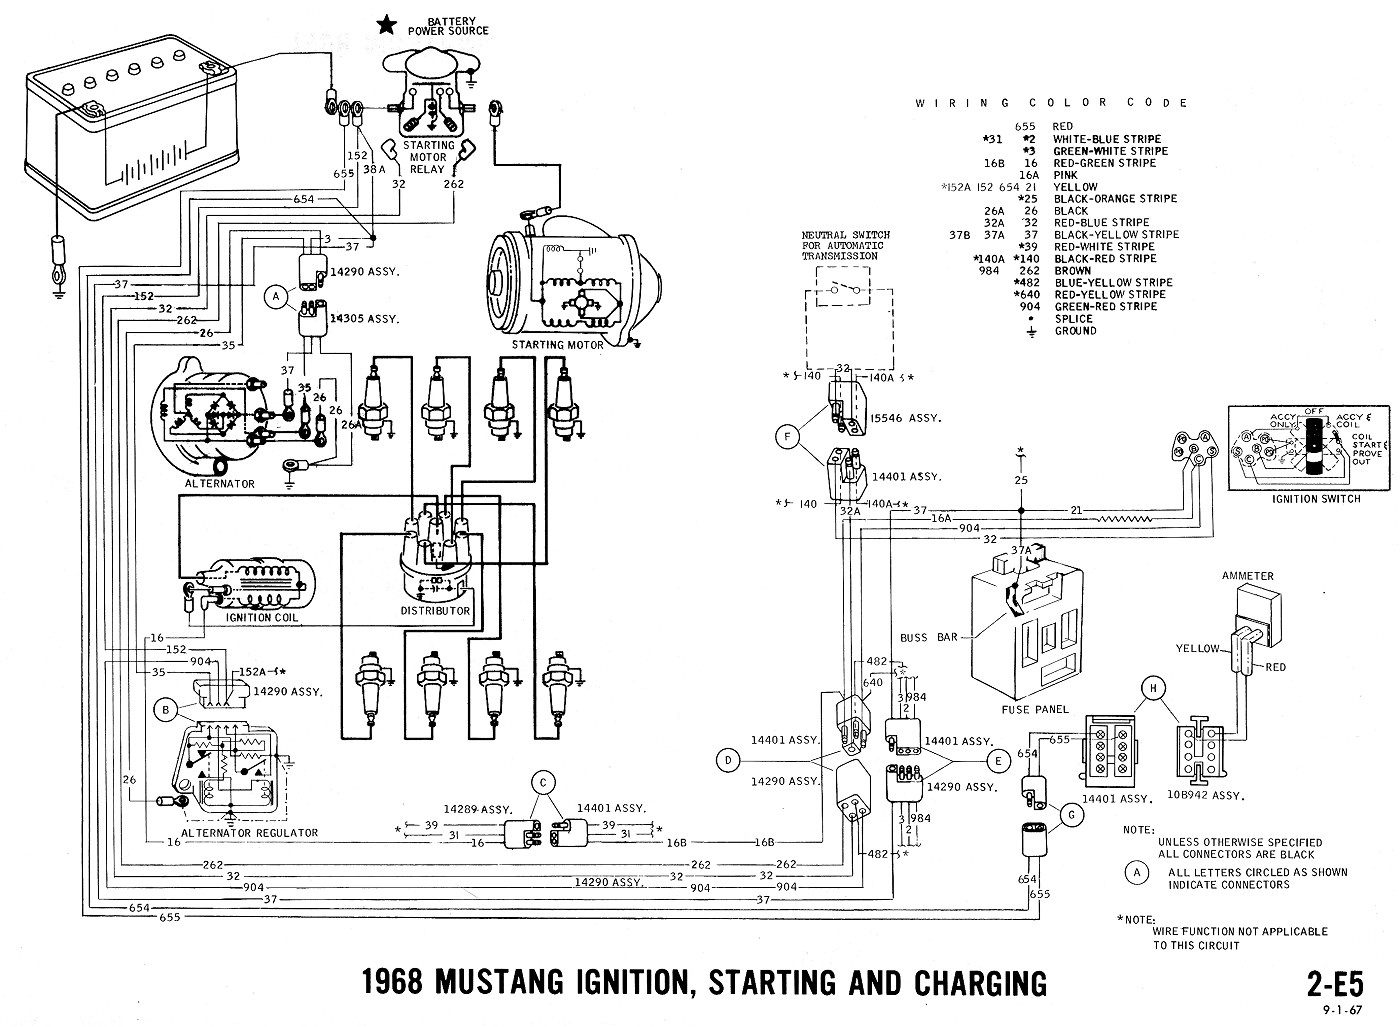 E5 1968 mustang wiring diagrams evolving software 1968 camaro gauge cluster wiring diagram at bayanpartner.co